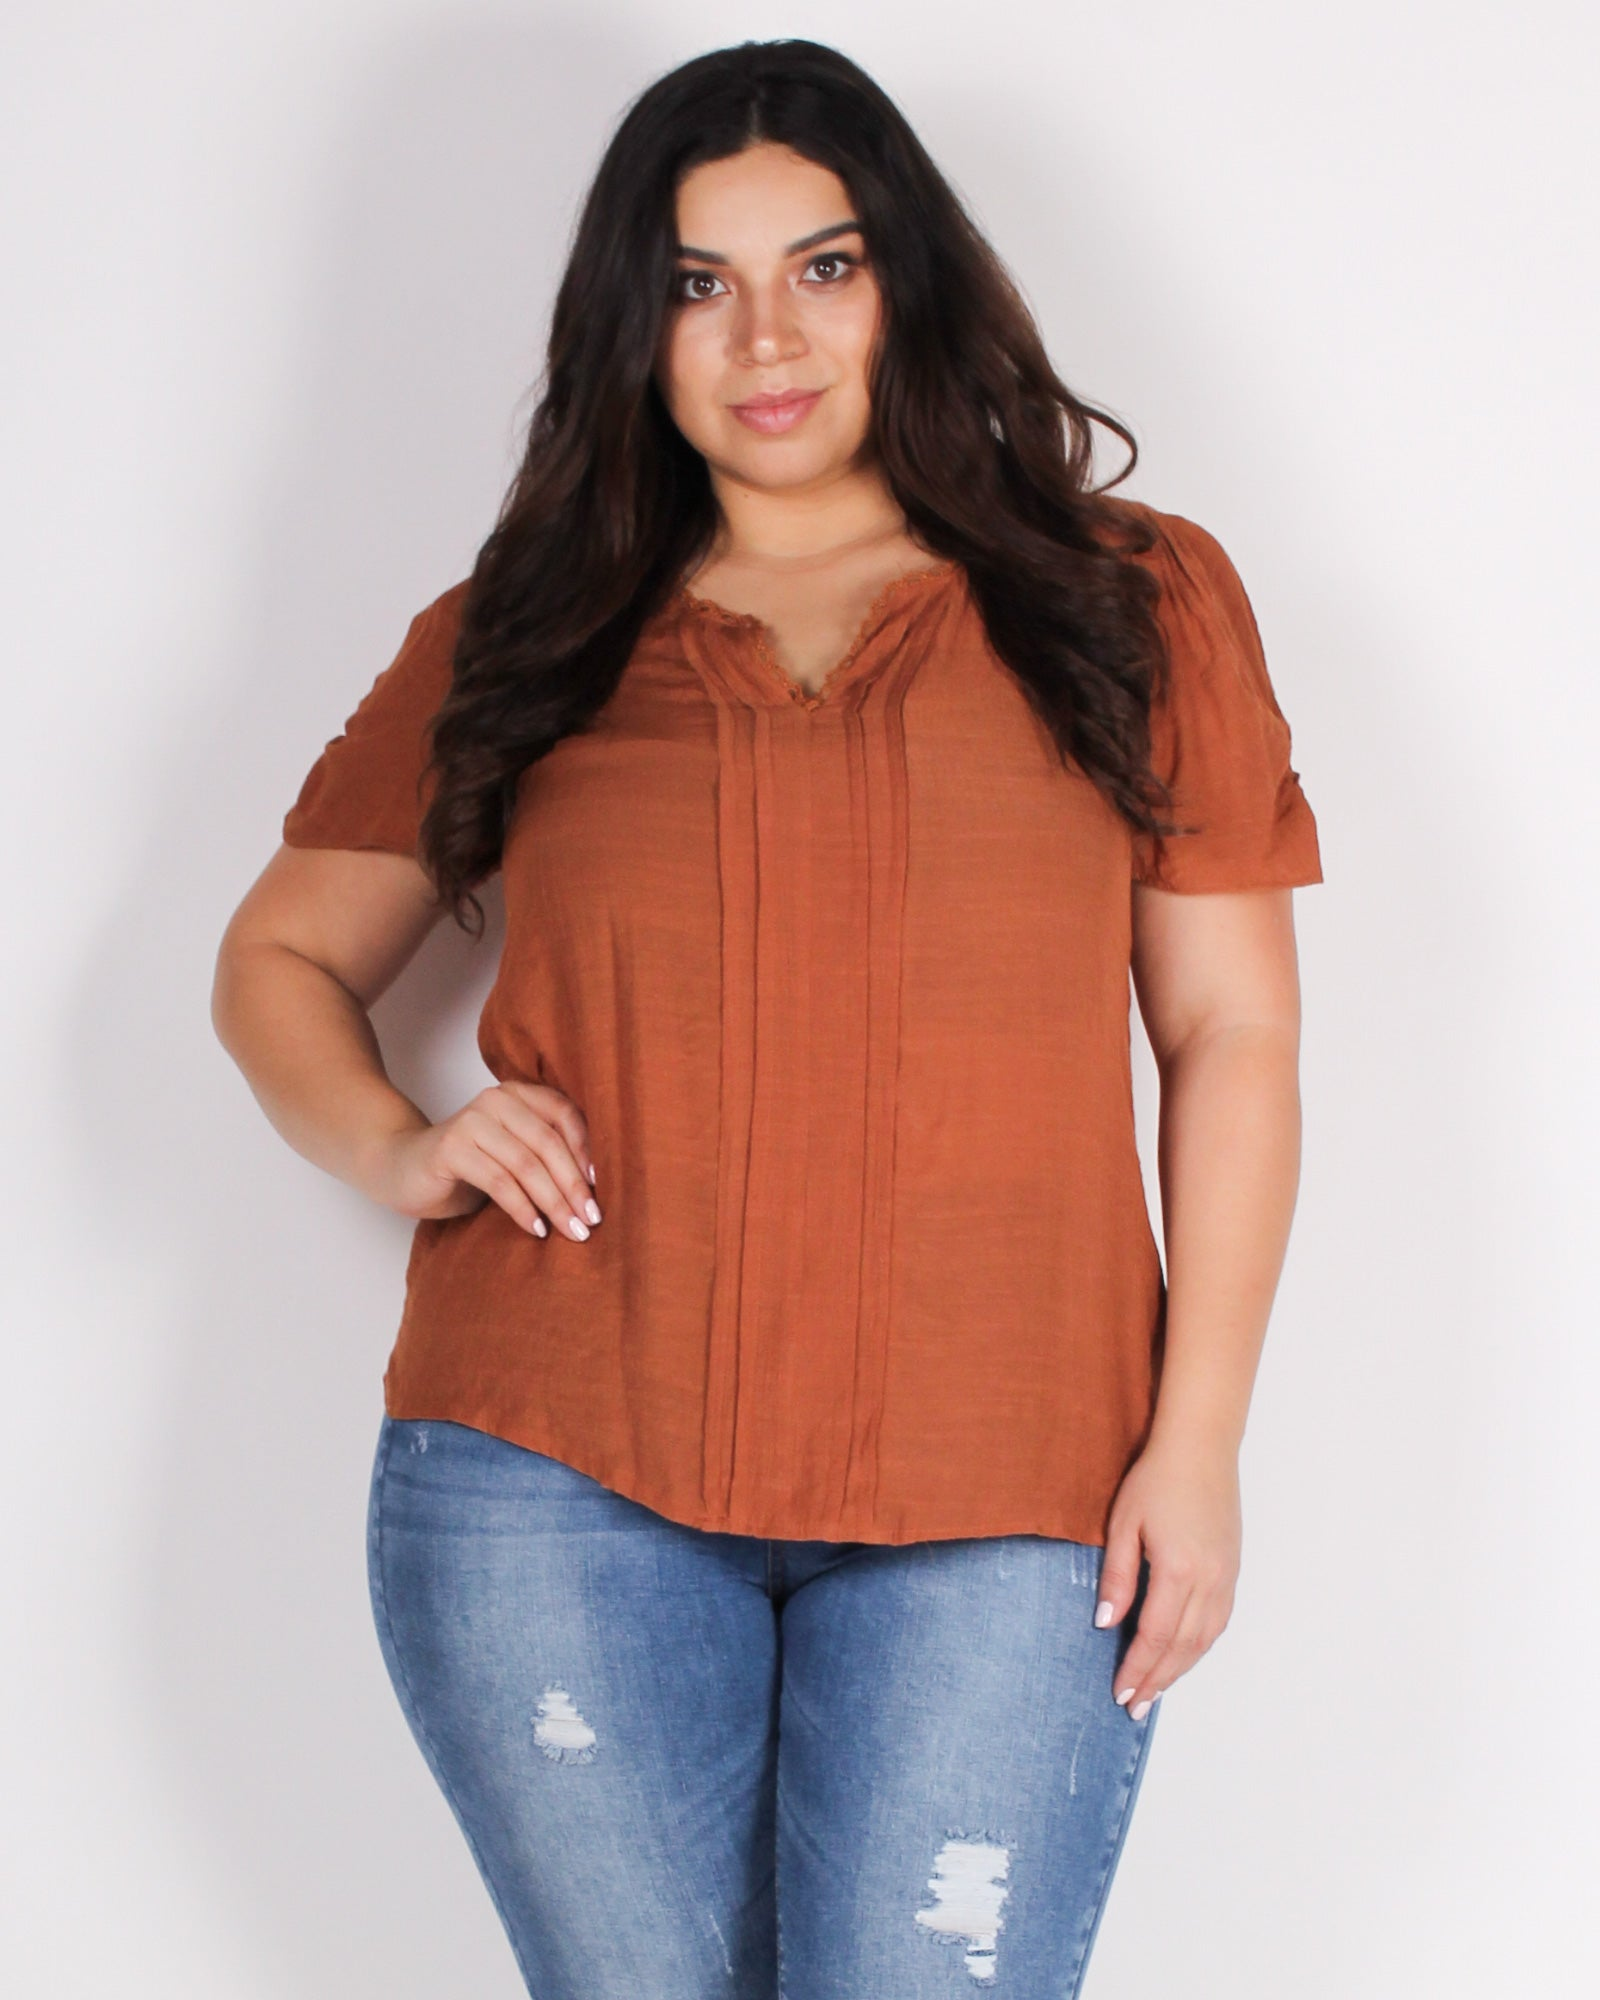 Fashion Q Shop Q Charmed, I'm Sure Plus Blouse (Rust) PEM5439